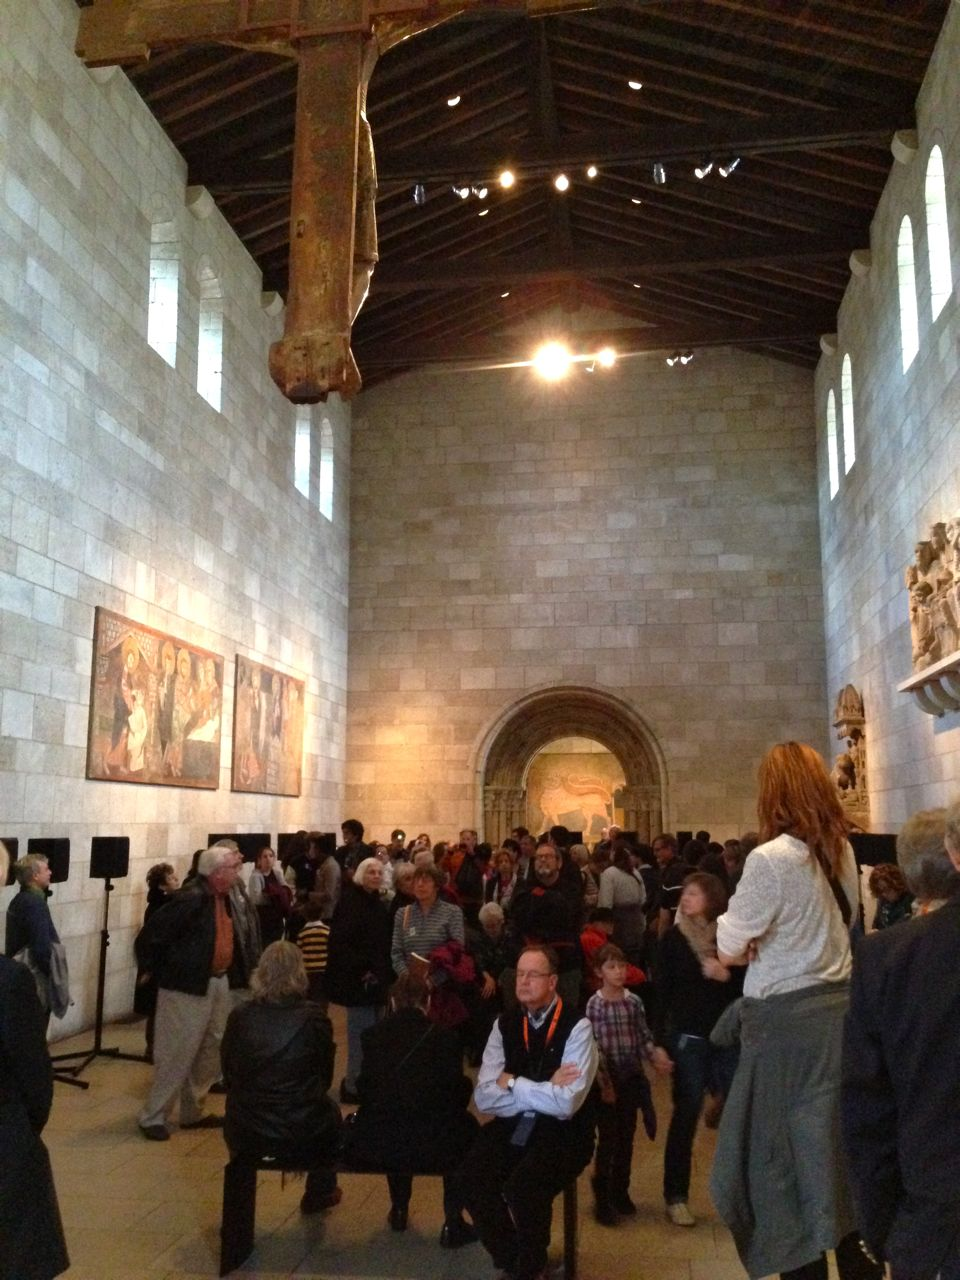 Janet-Cardiff-at-the-Cloisters-Photo-by-Michelle-Aldredge-14